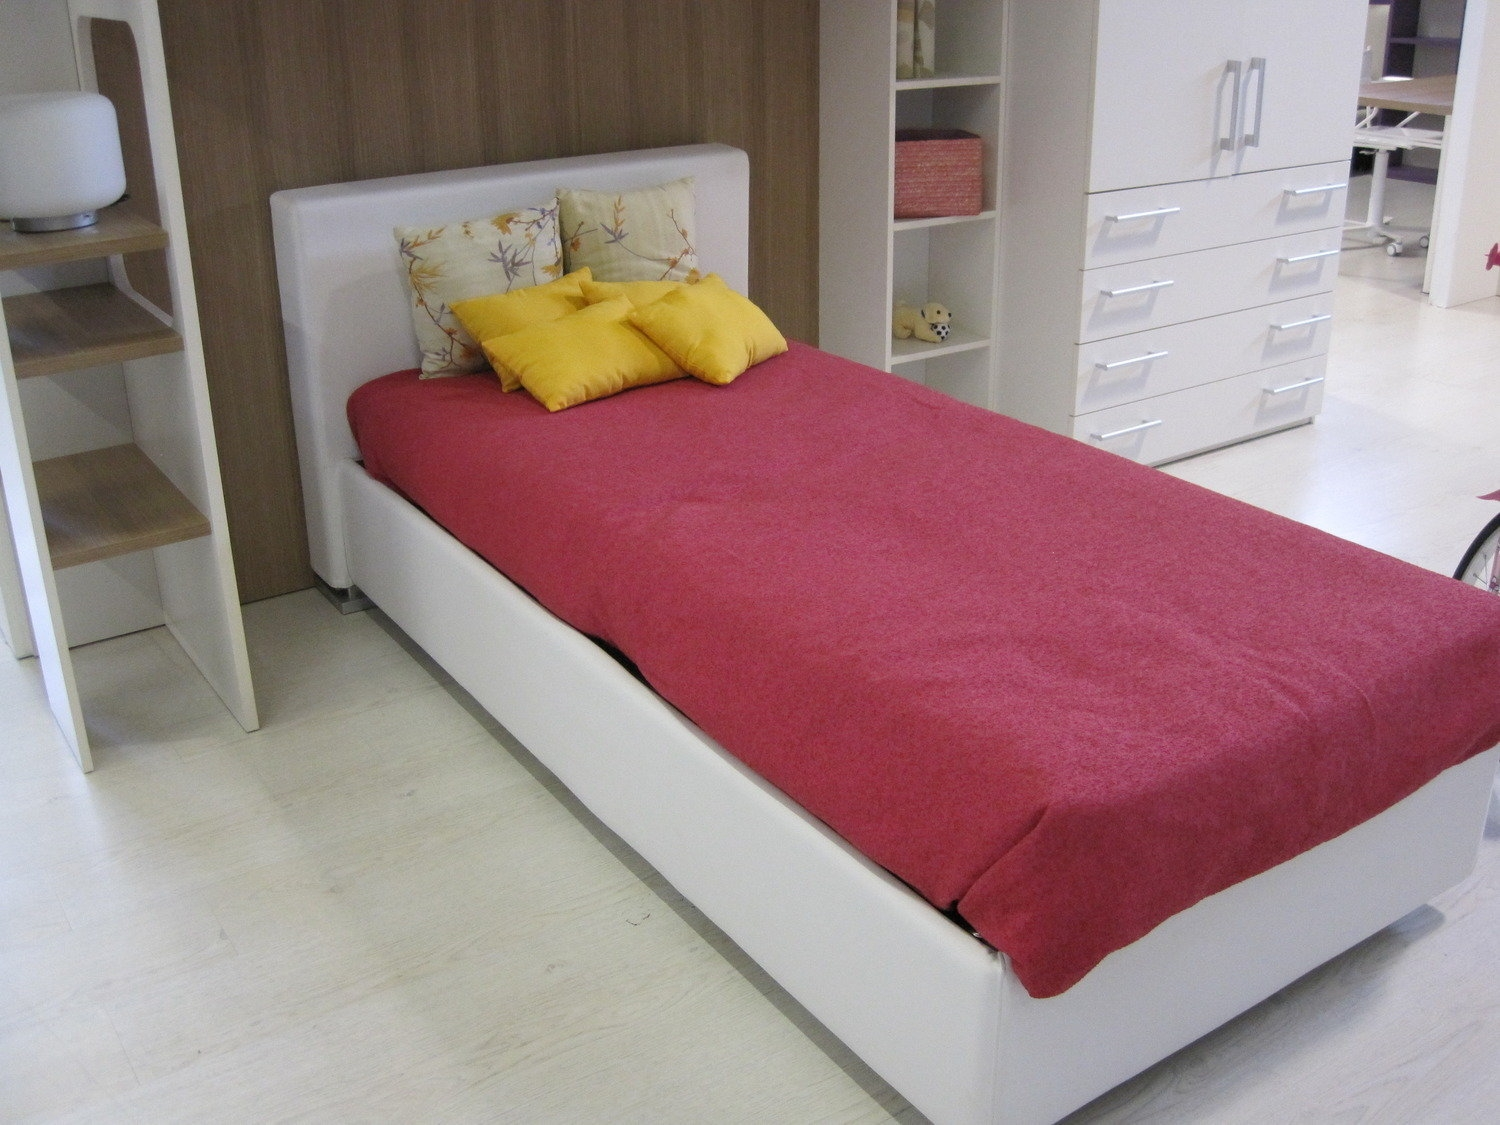 Mondo convenienza letto singolo contenitore canonseverywhere for Letto sommier mondo convenienza